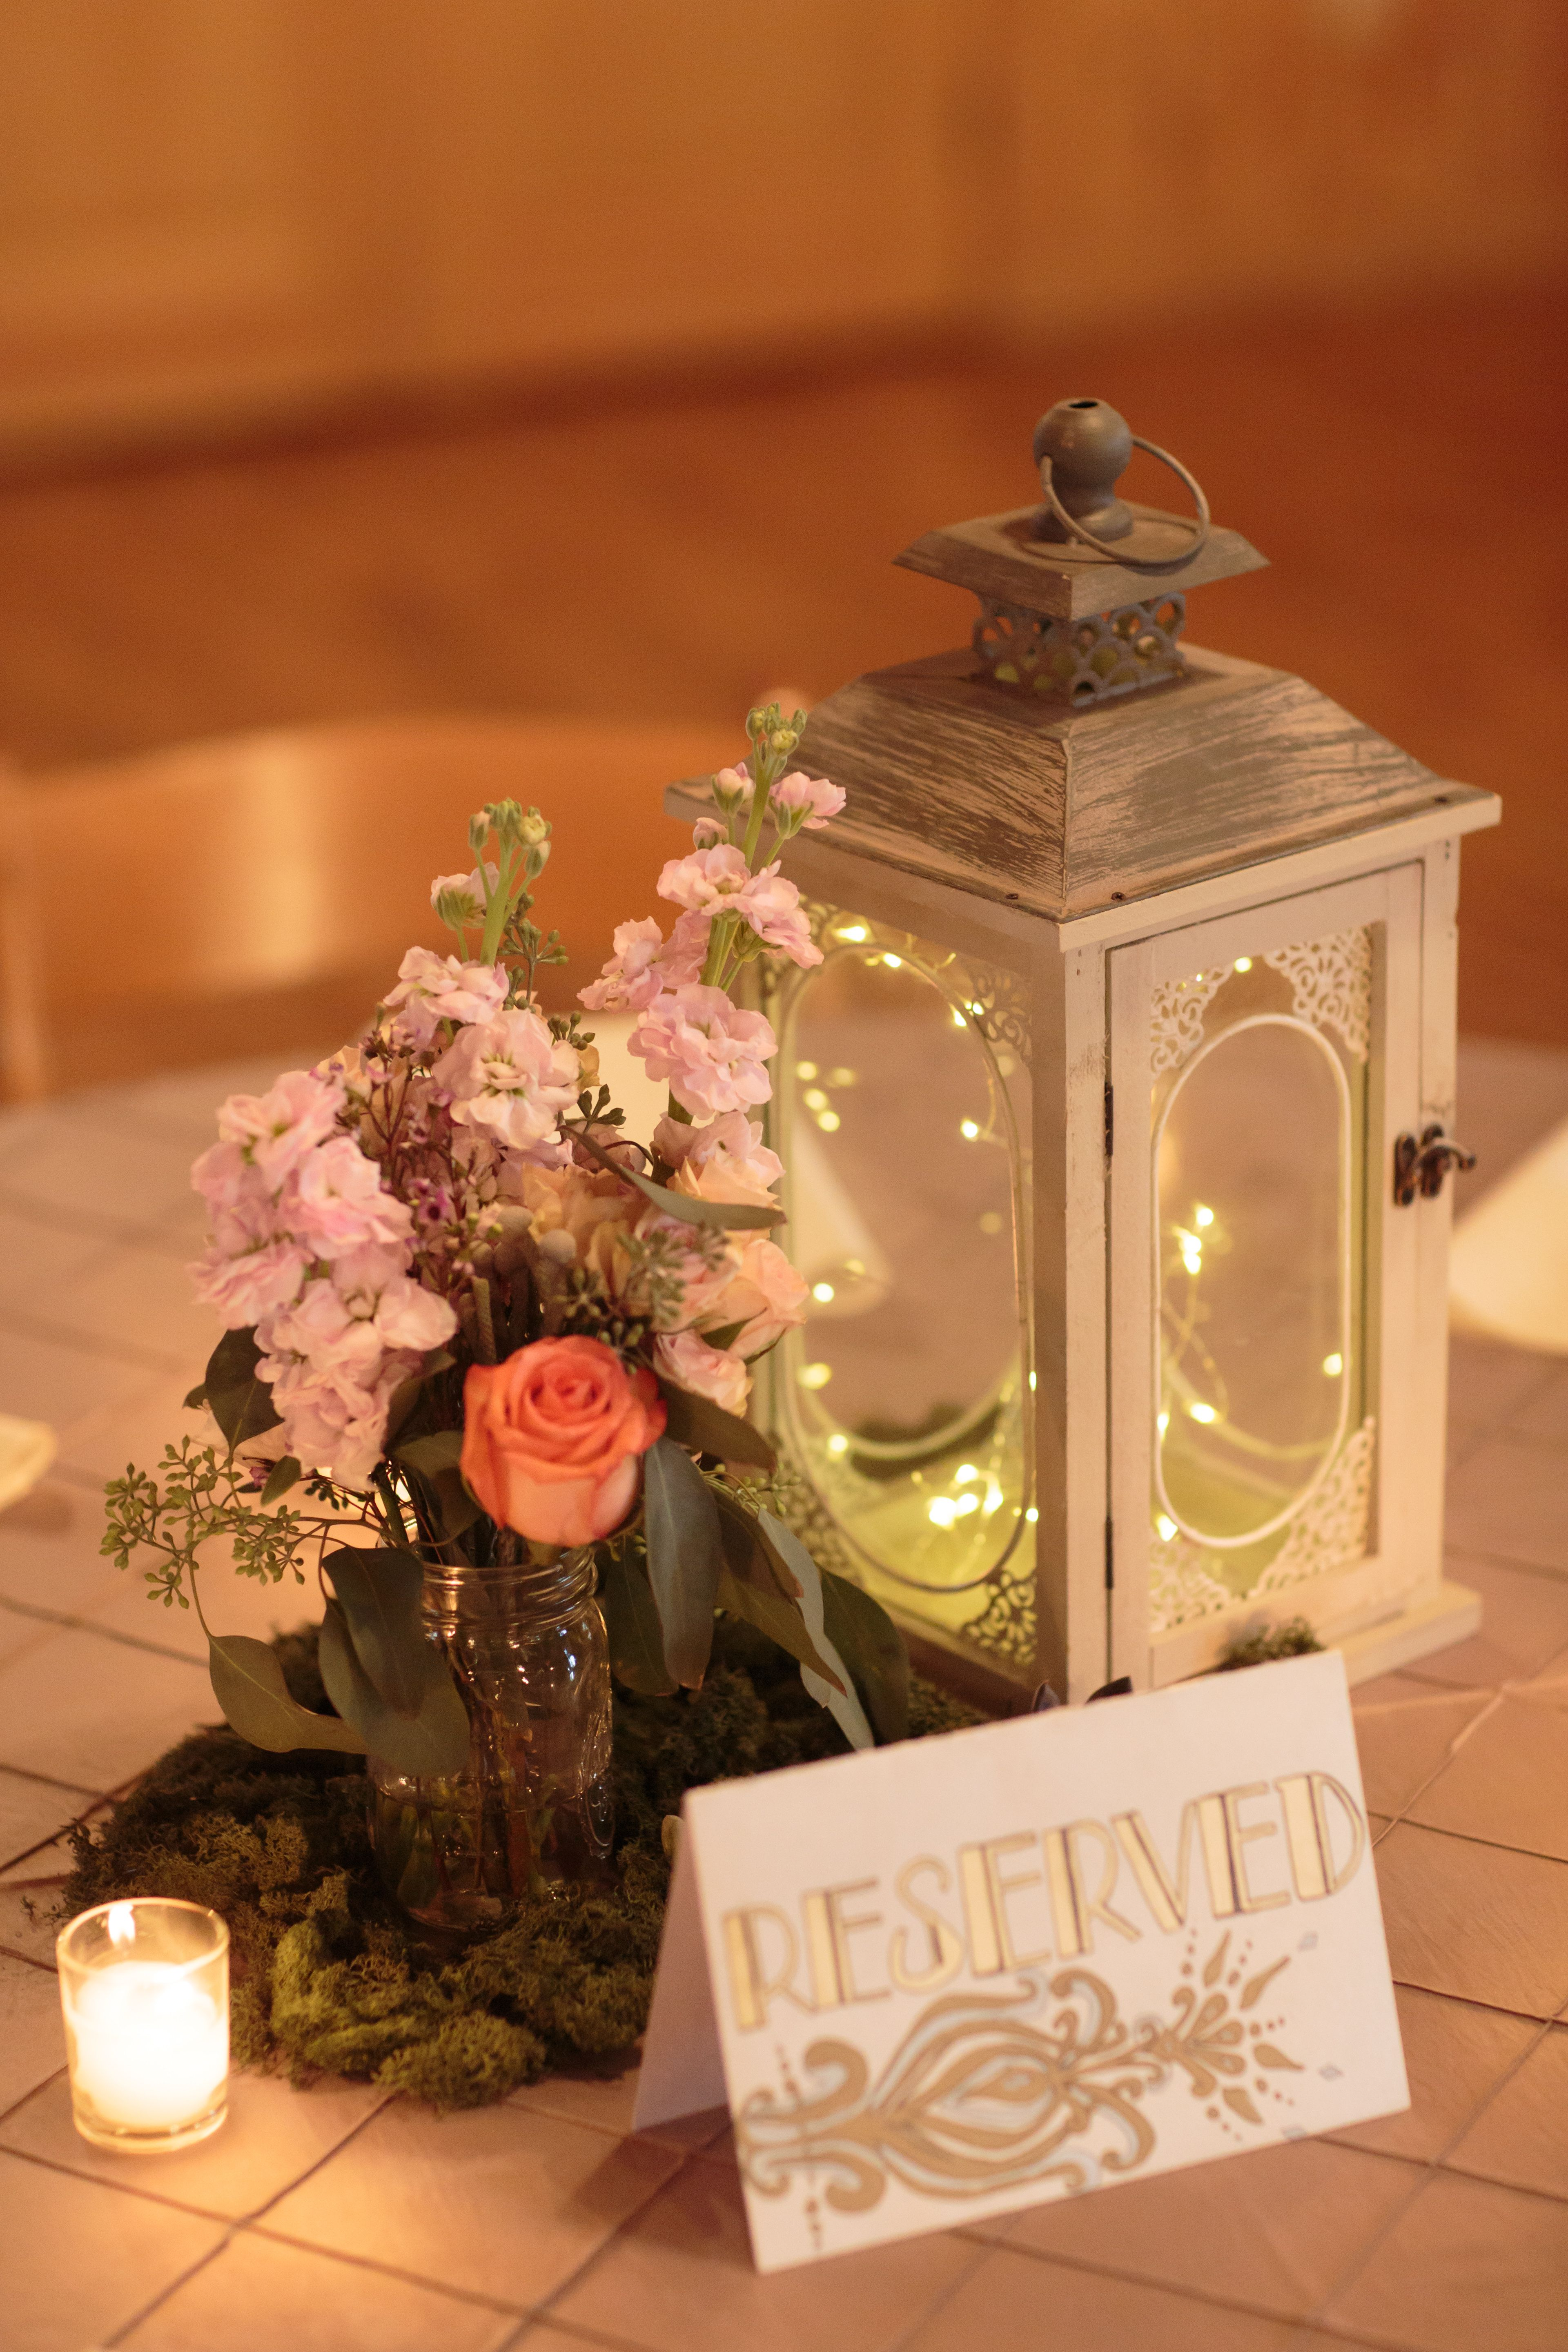 Whimsical Lantern Centerpiece With Fairy Lights At The Springs